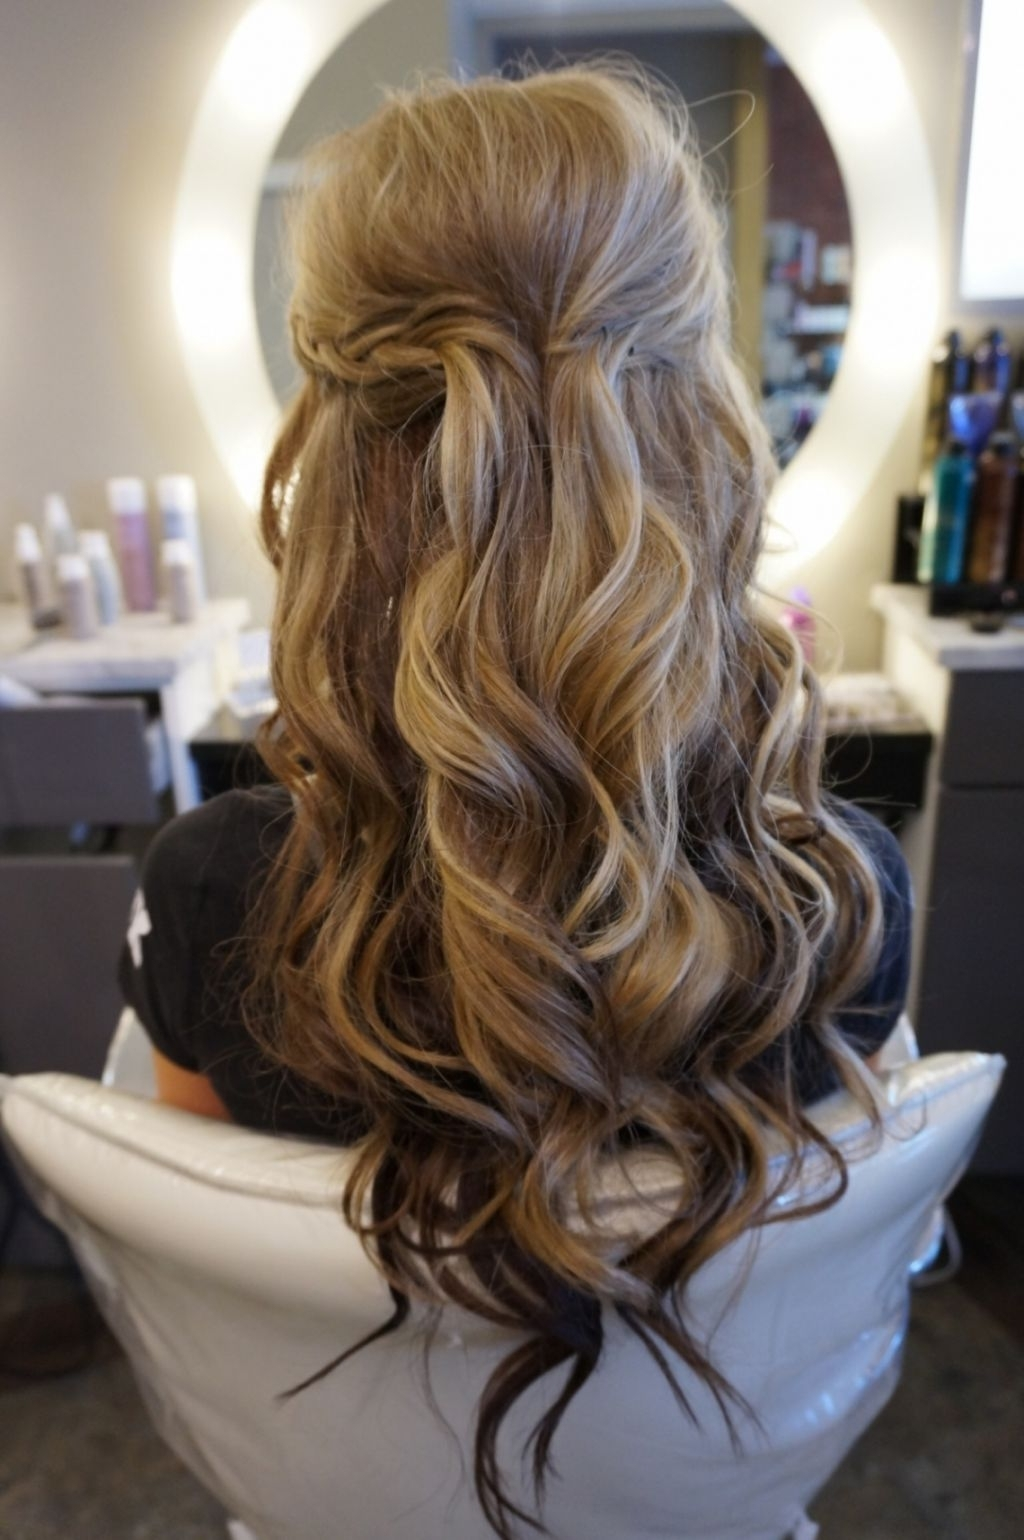 √ 24+ Winning Wedding Hairstyles For Bridesmaids: Wedding Regarding 2017 Half Up Wedding Hairstyles For Bridesmaids (View 1 of 15)